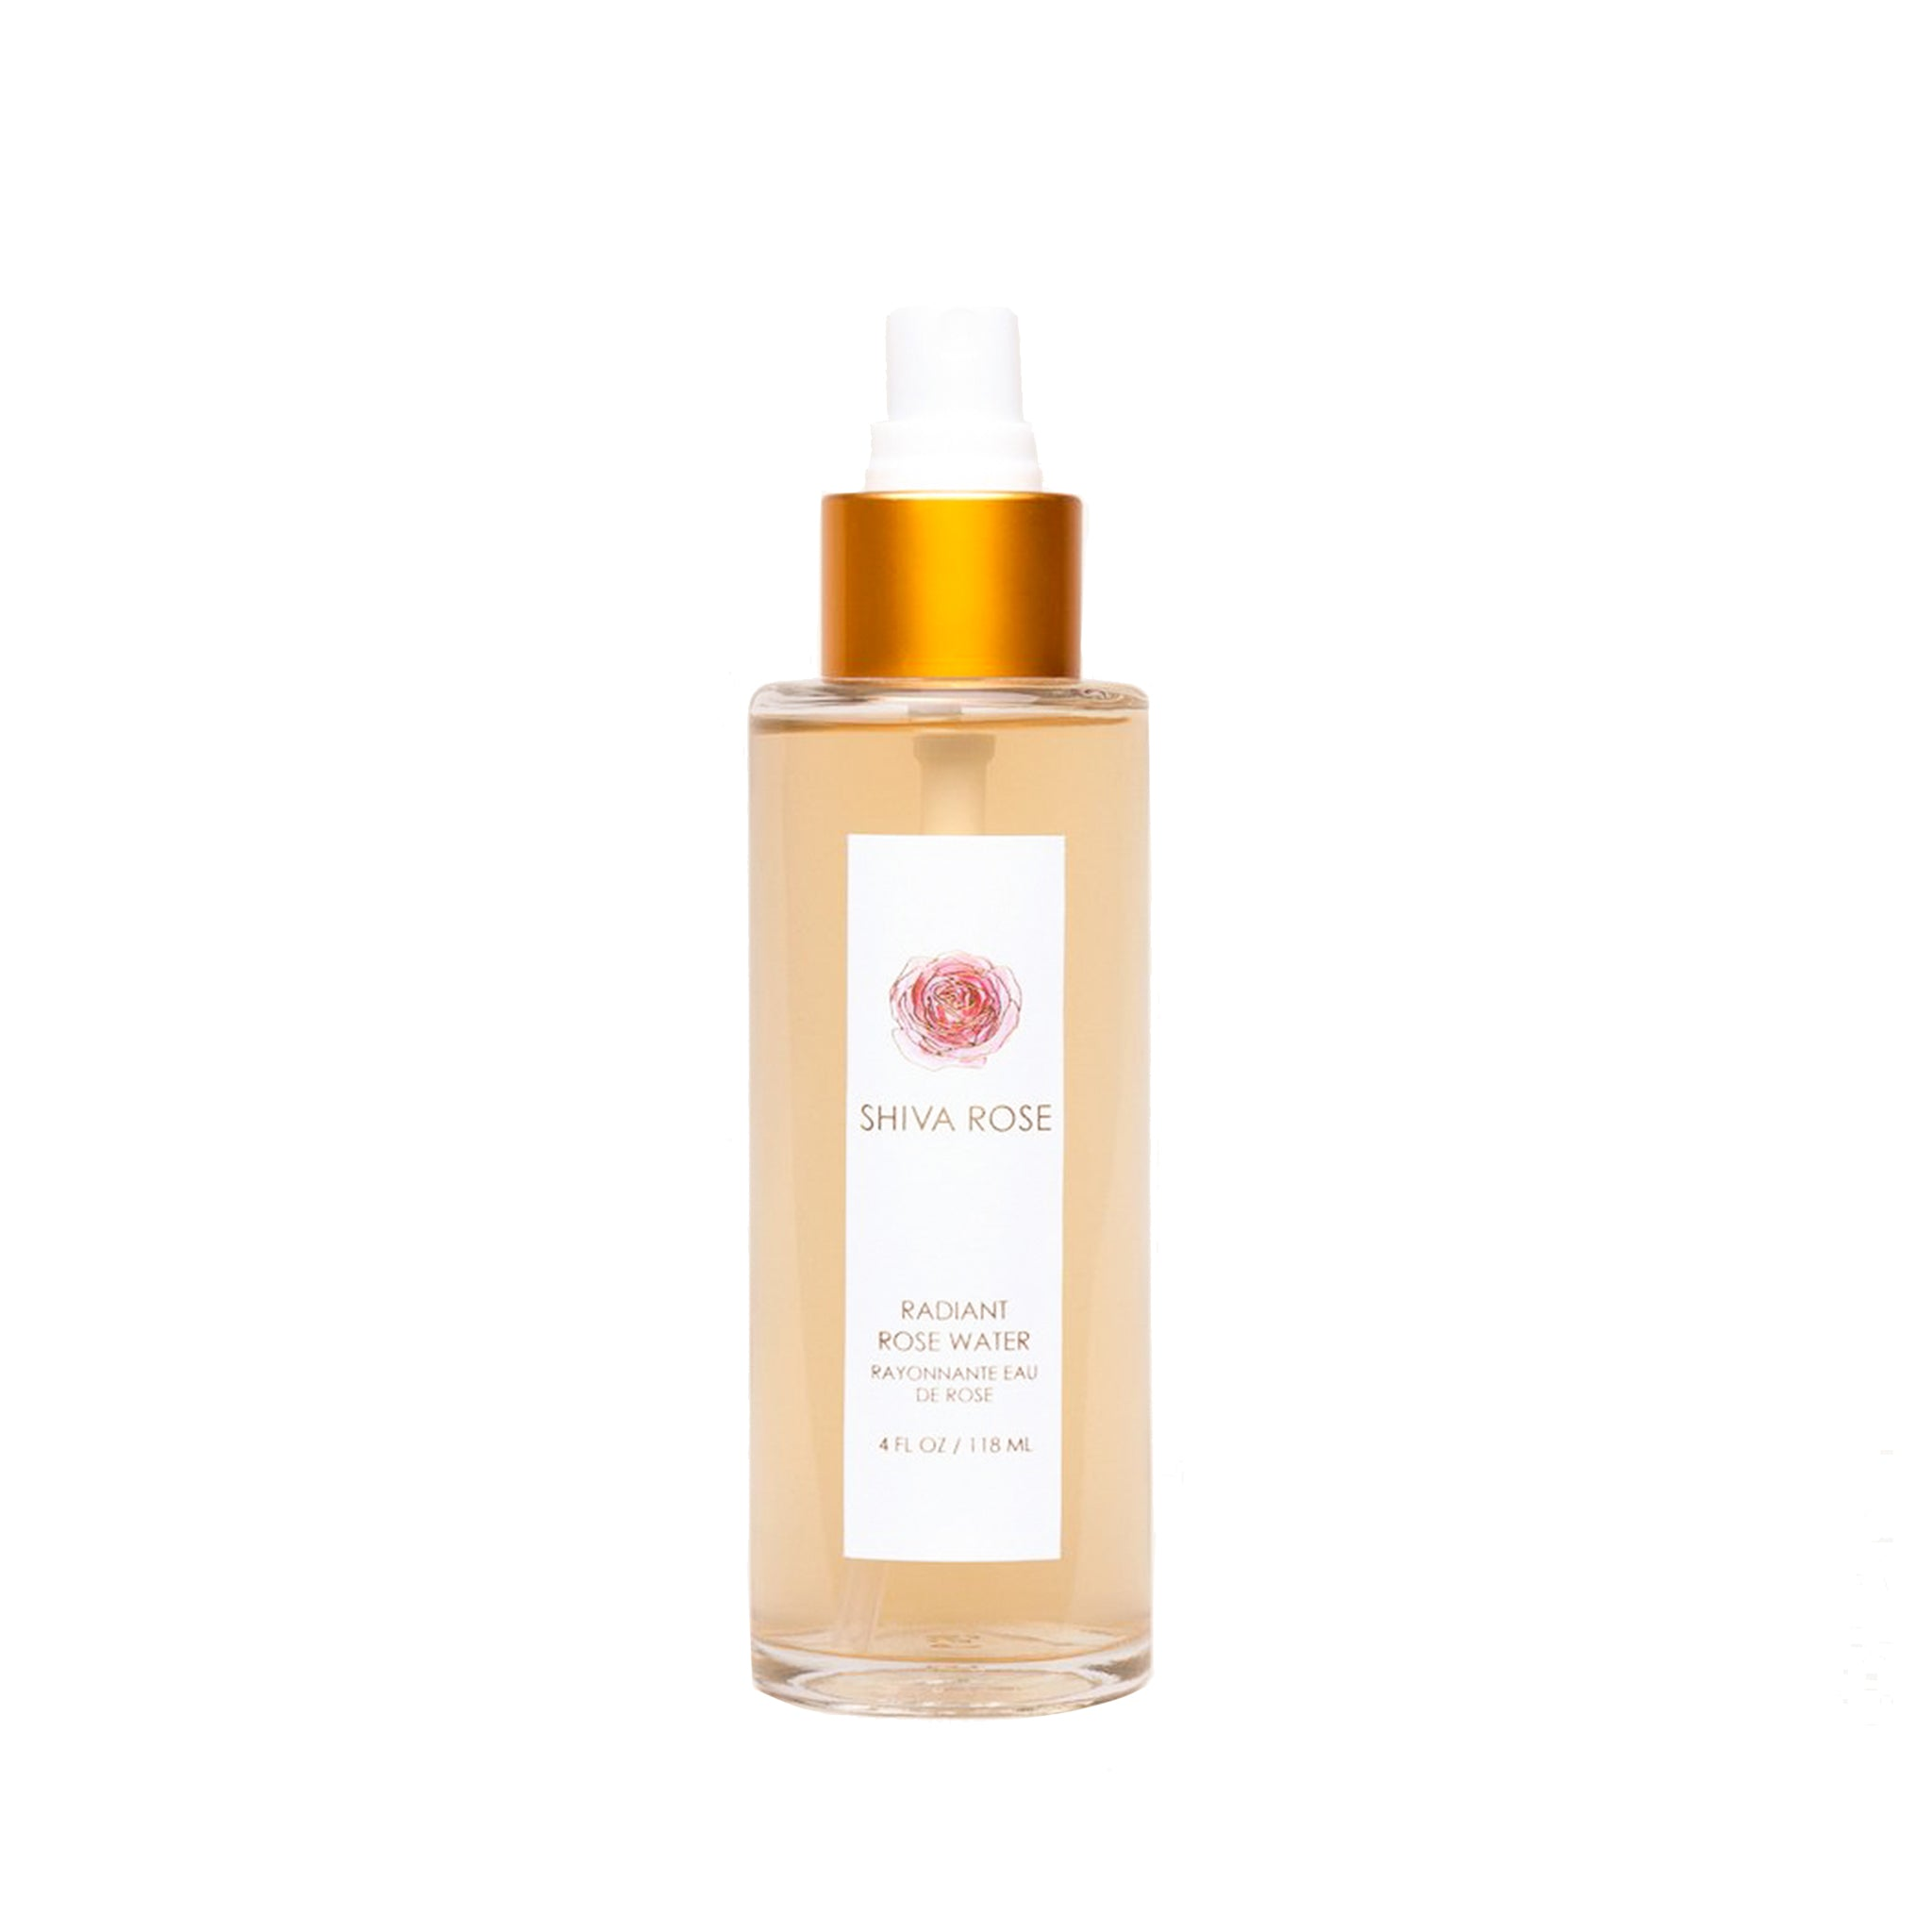 Radiant Rosewater by Shiva Rose